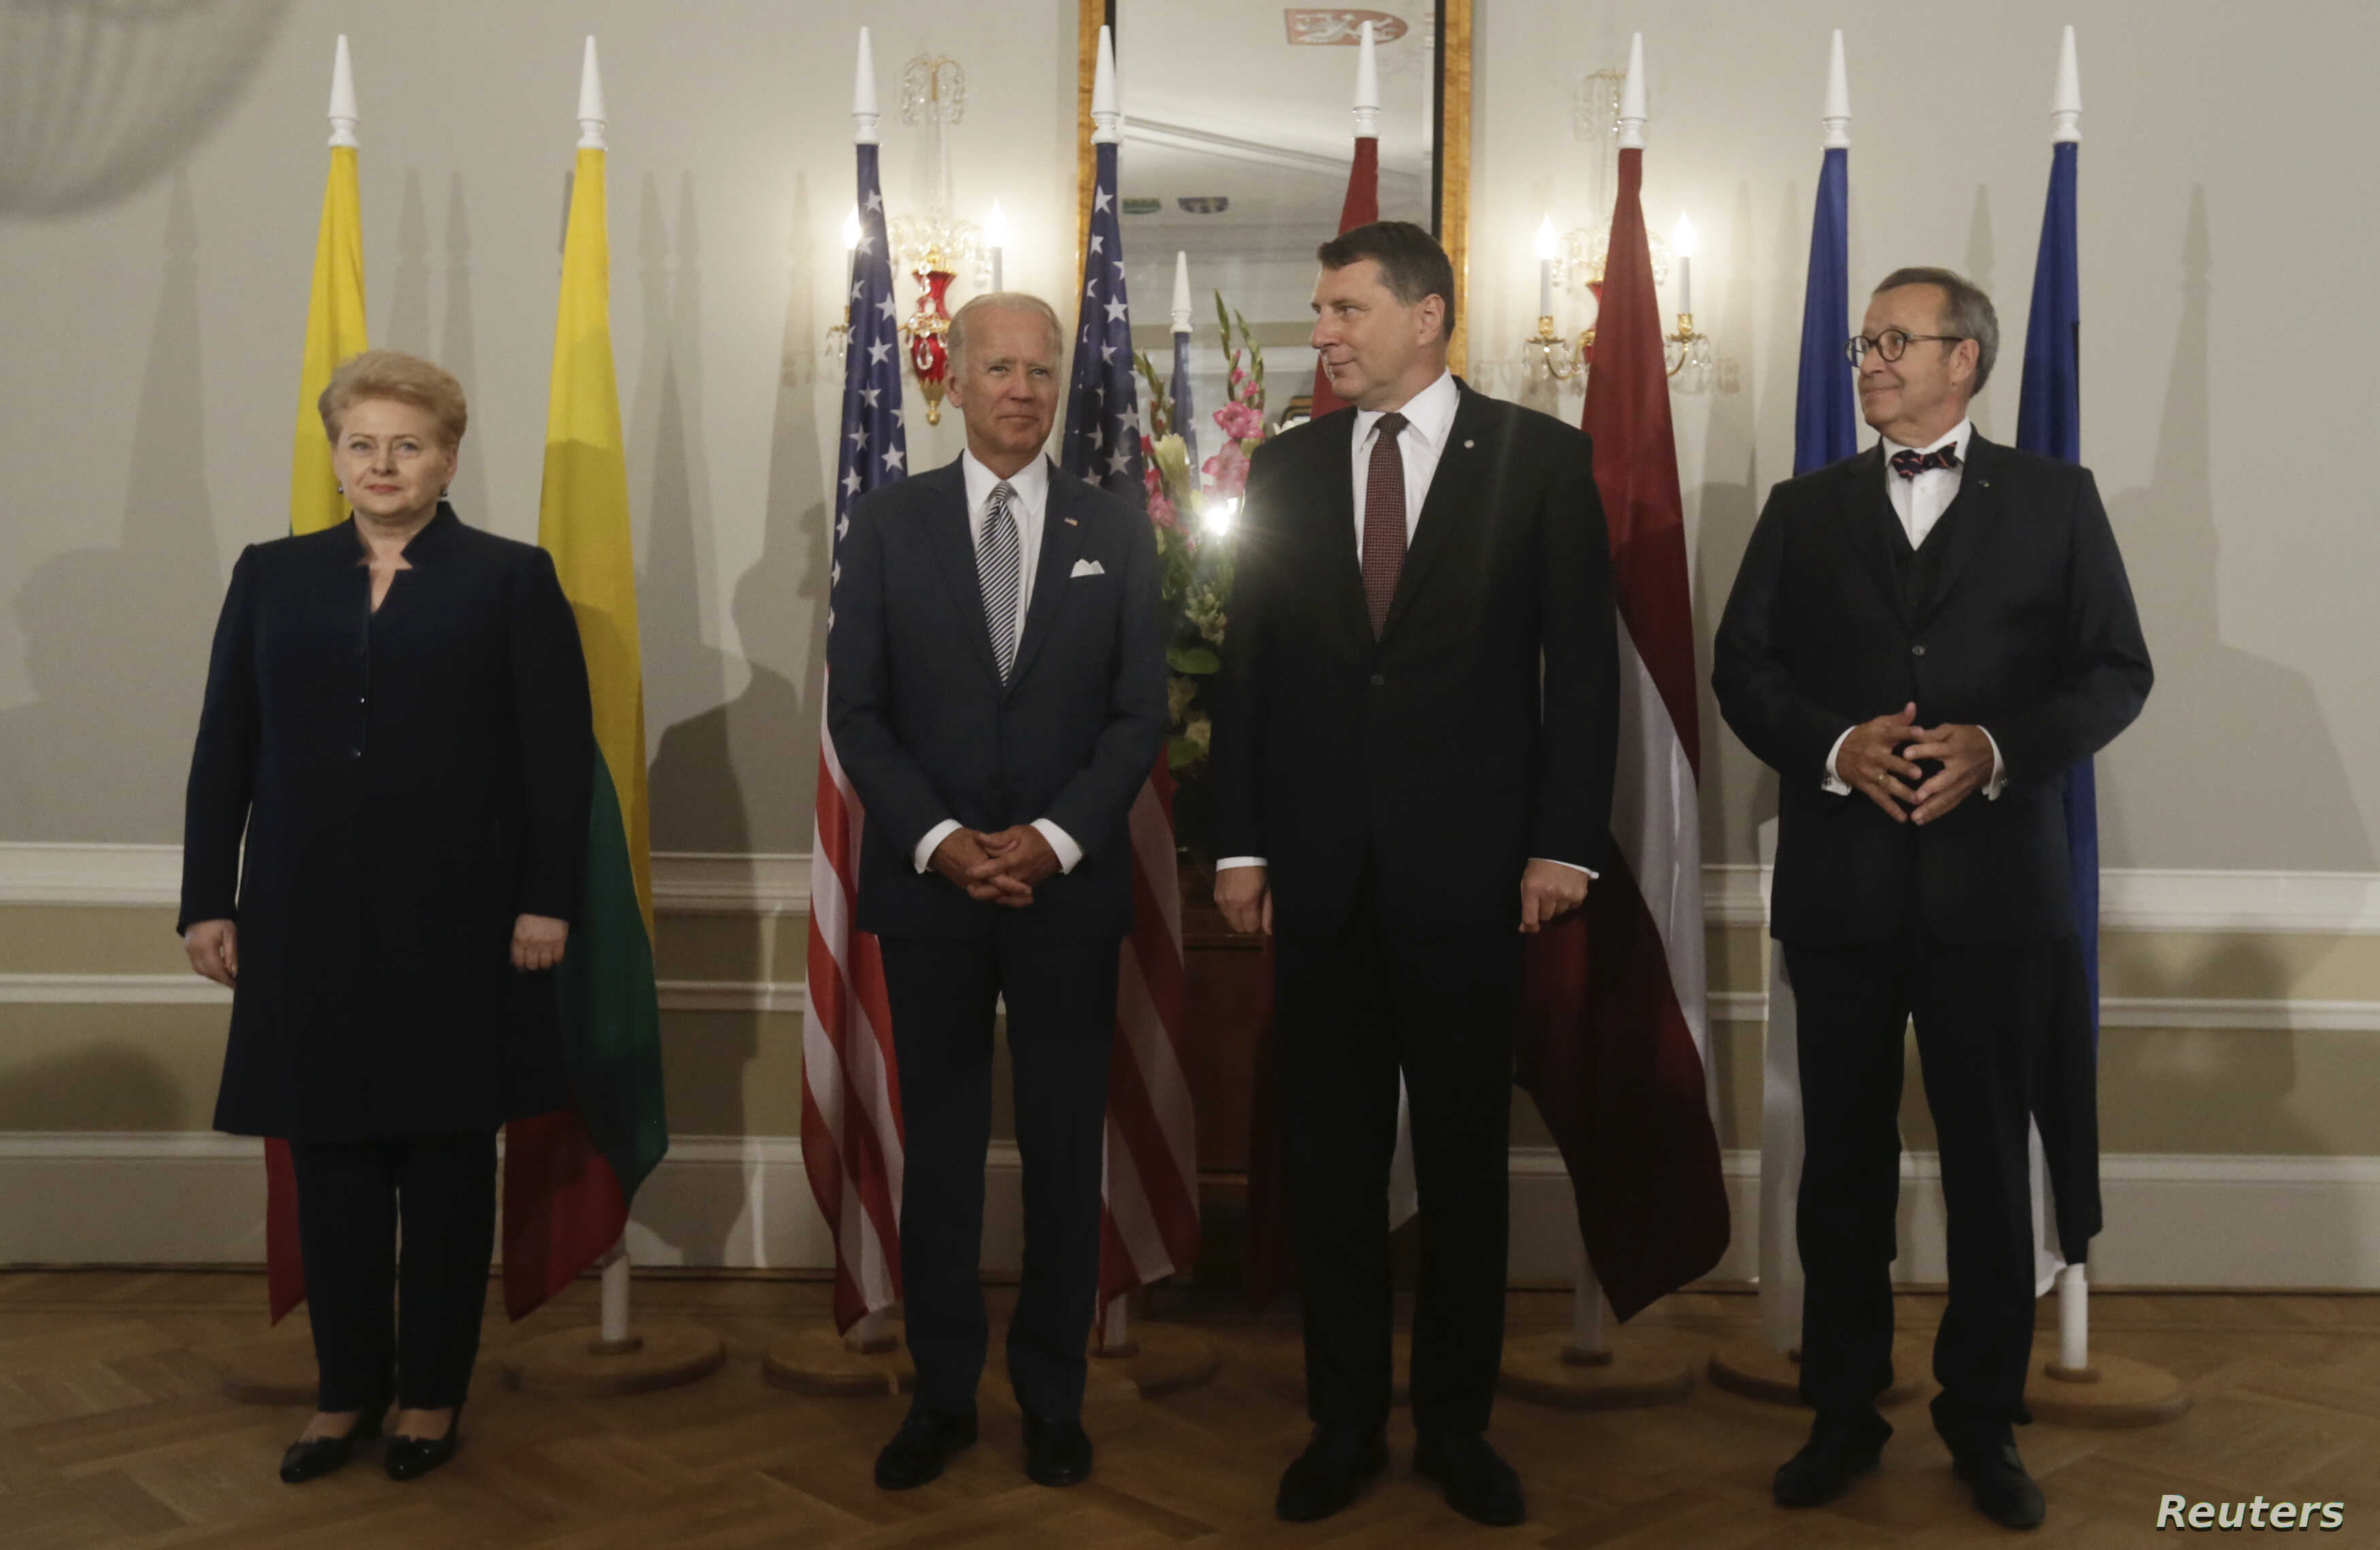 U.S. Vice President Joe Biden, Latvia's President Raimonds Vejonis (2R), Lithuania's President Dalia Grybauskaite (L) and Estonia's President Toomas Hendrik Ilves (R) pose for a picture in Riga castle, Latvia, Aug. 23, 2016.